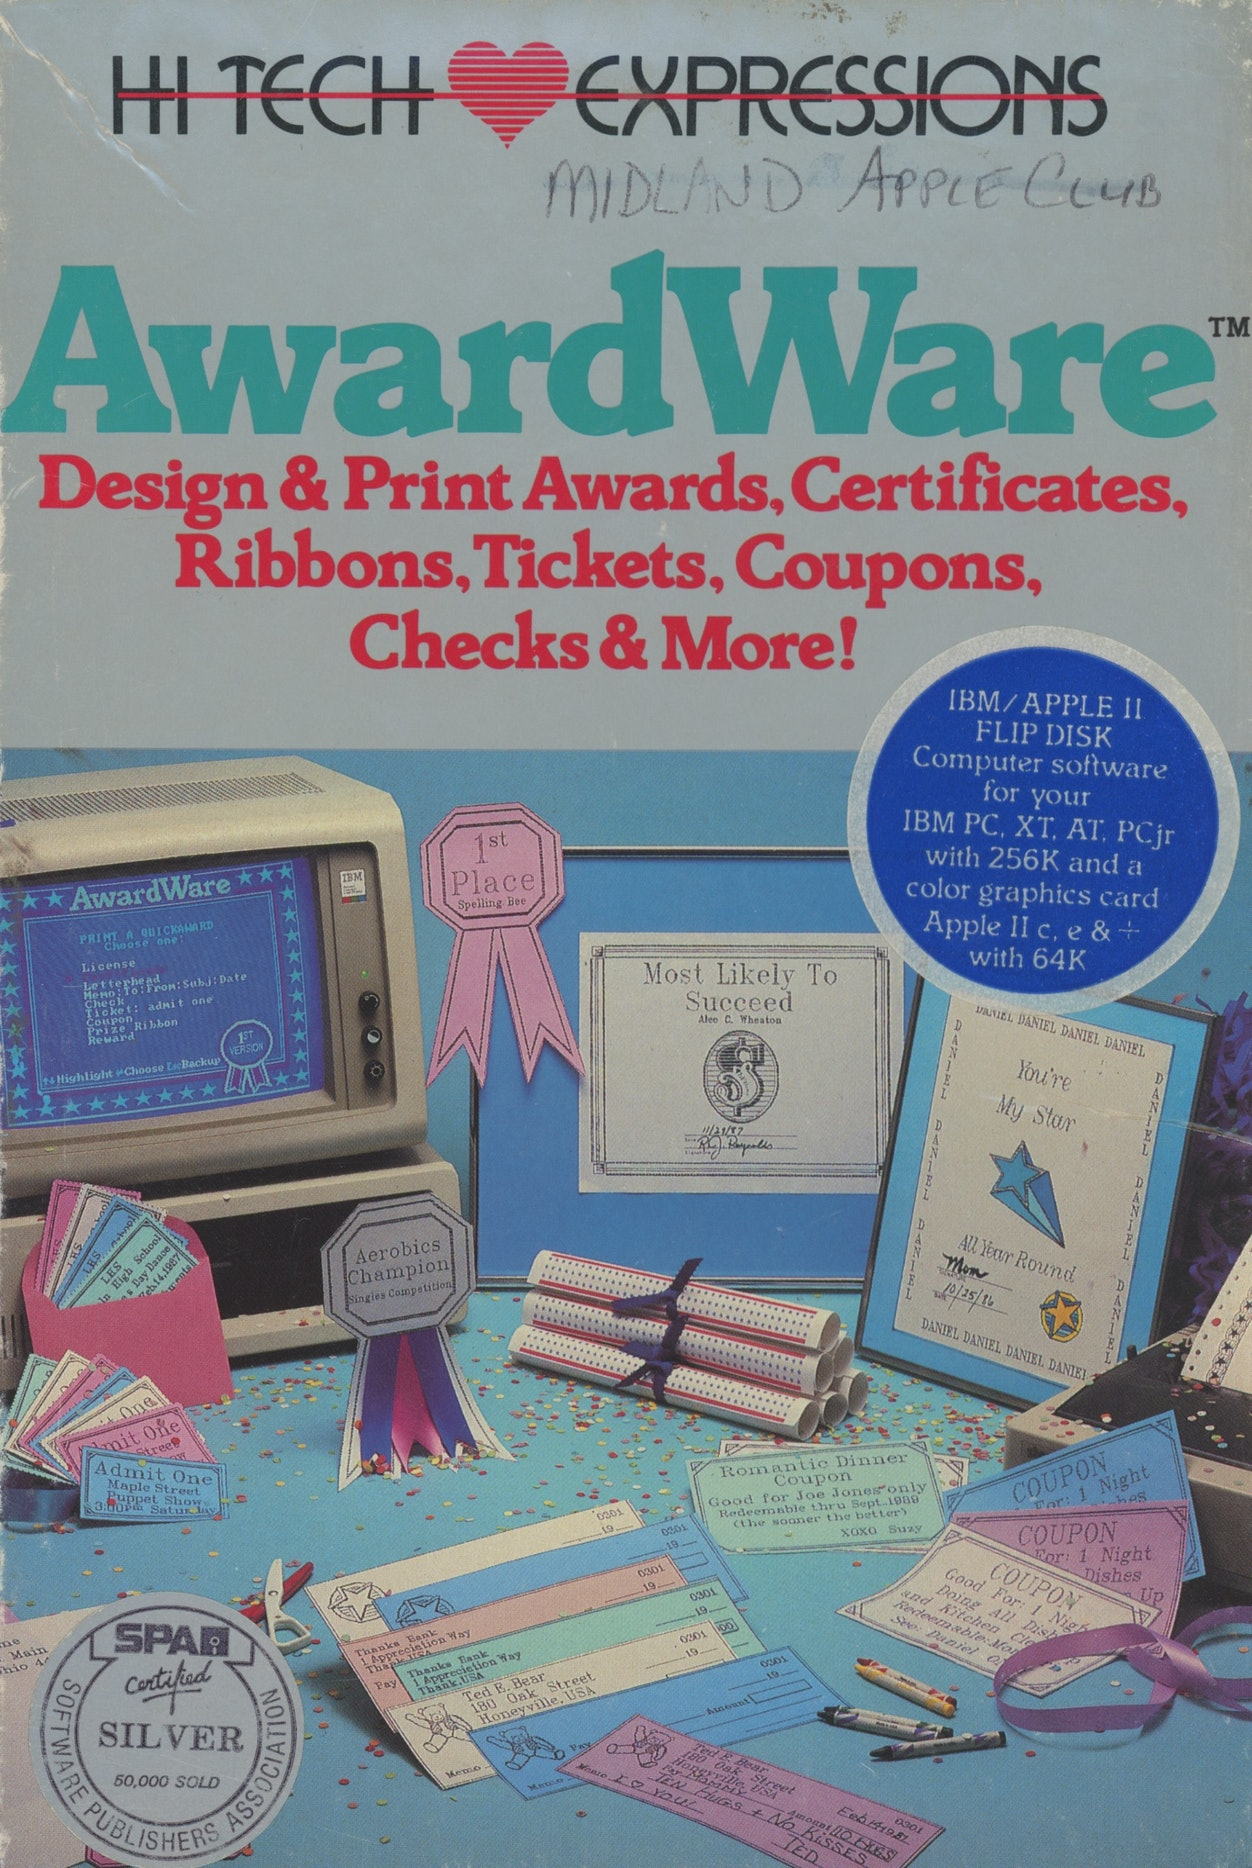 AwardWare: Design & Print Awards, Certificates, Ribbons, TIckets, Coupons, Checks & More!